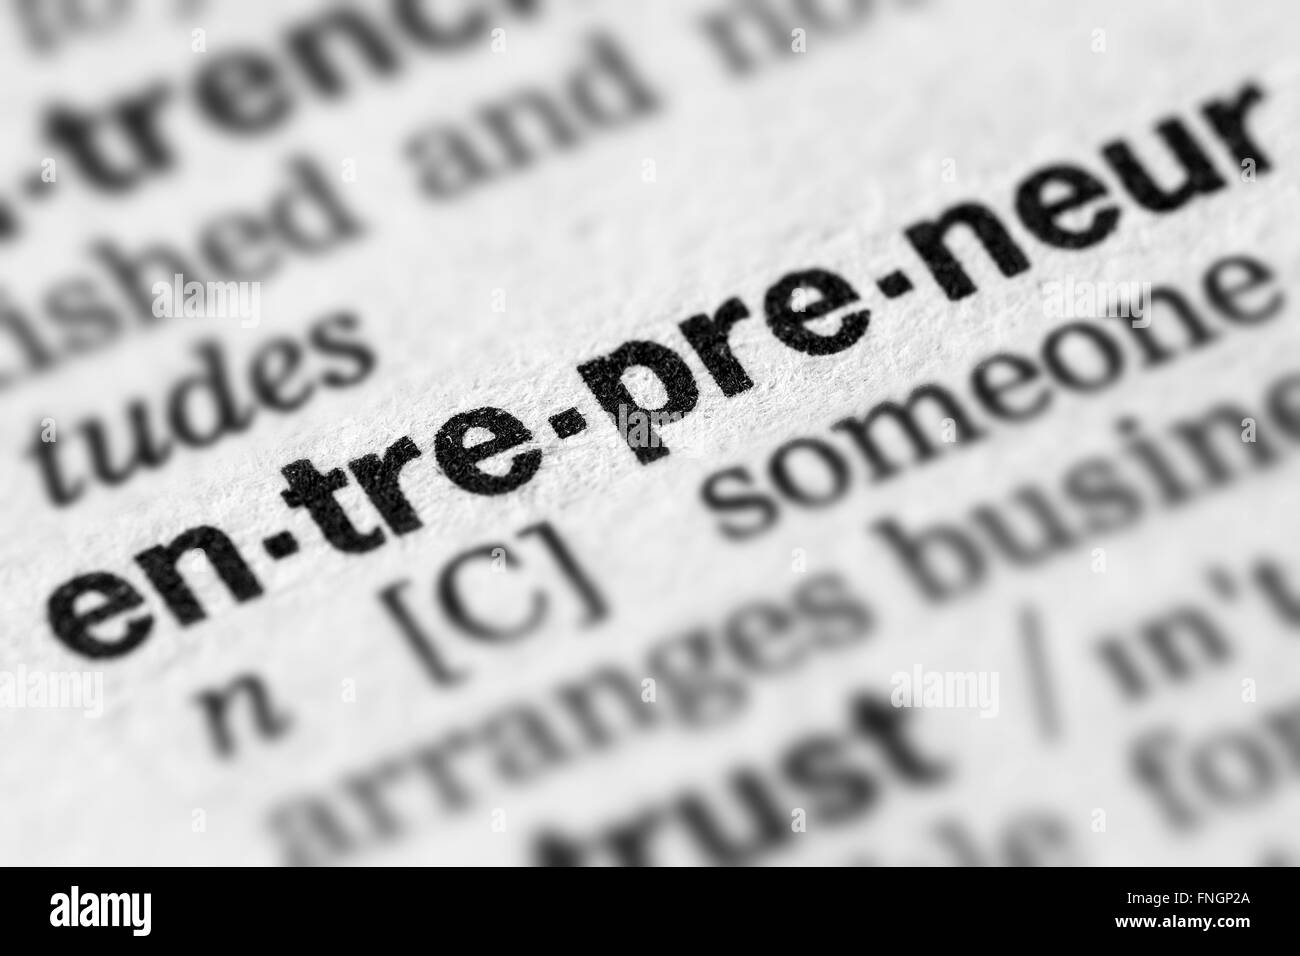 Entrepreneur Definition Word Text in Dictionary Page - Stock Image